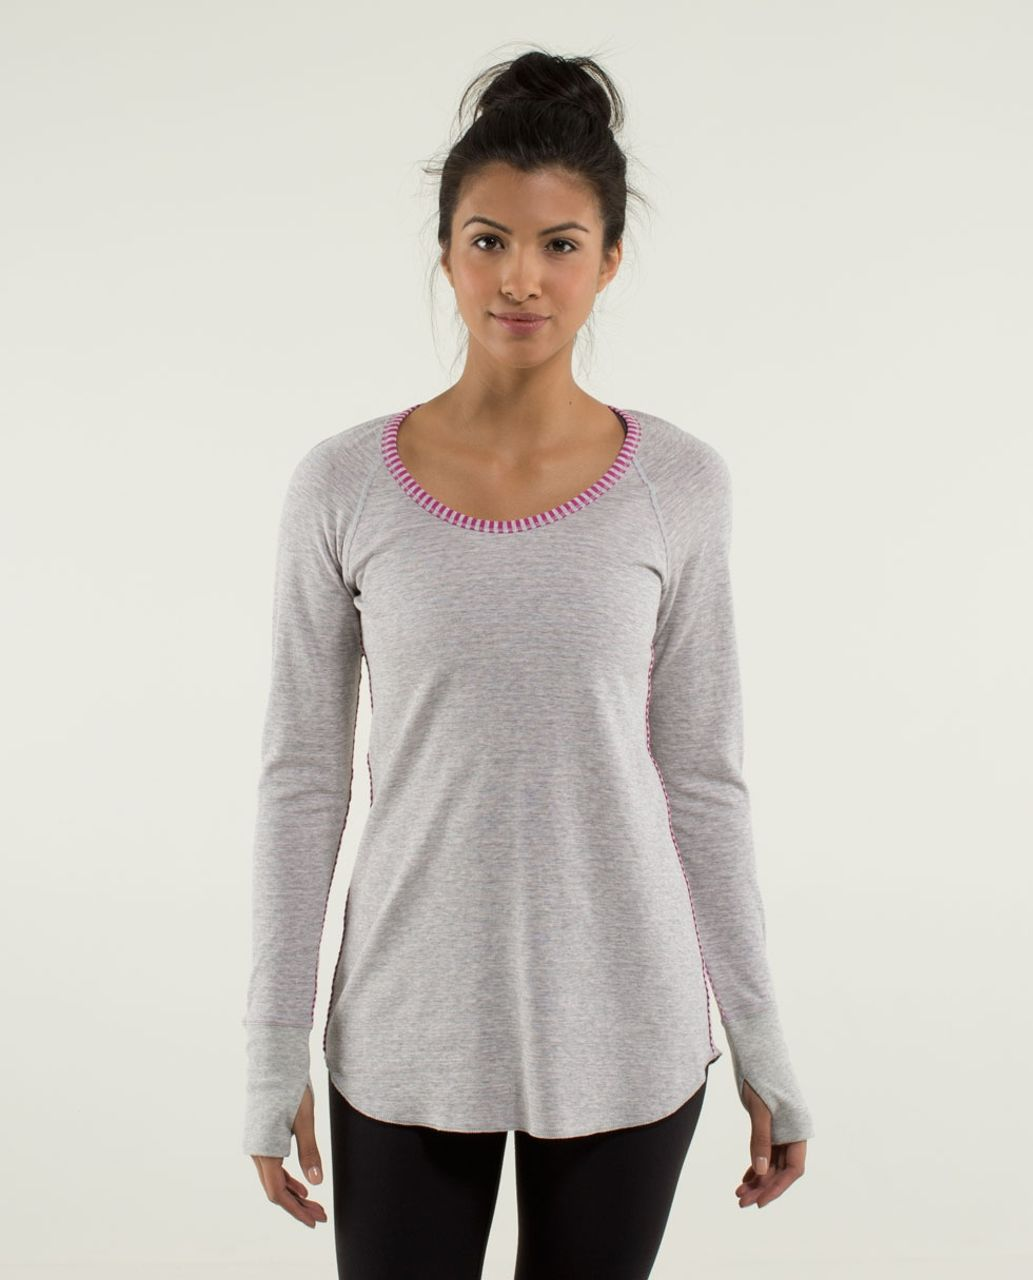 48adfac849 Lululemon Open Your Heart Long Sleeve - Heathered Light Grey / Classic  Stripe Heathered Light Grey Raspberry / Heathered Light Grey - lulu fanatics